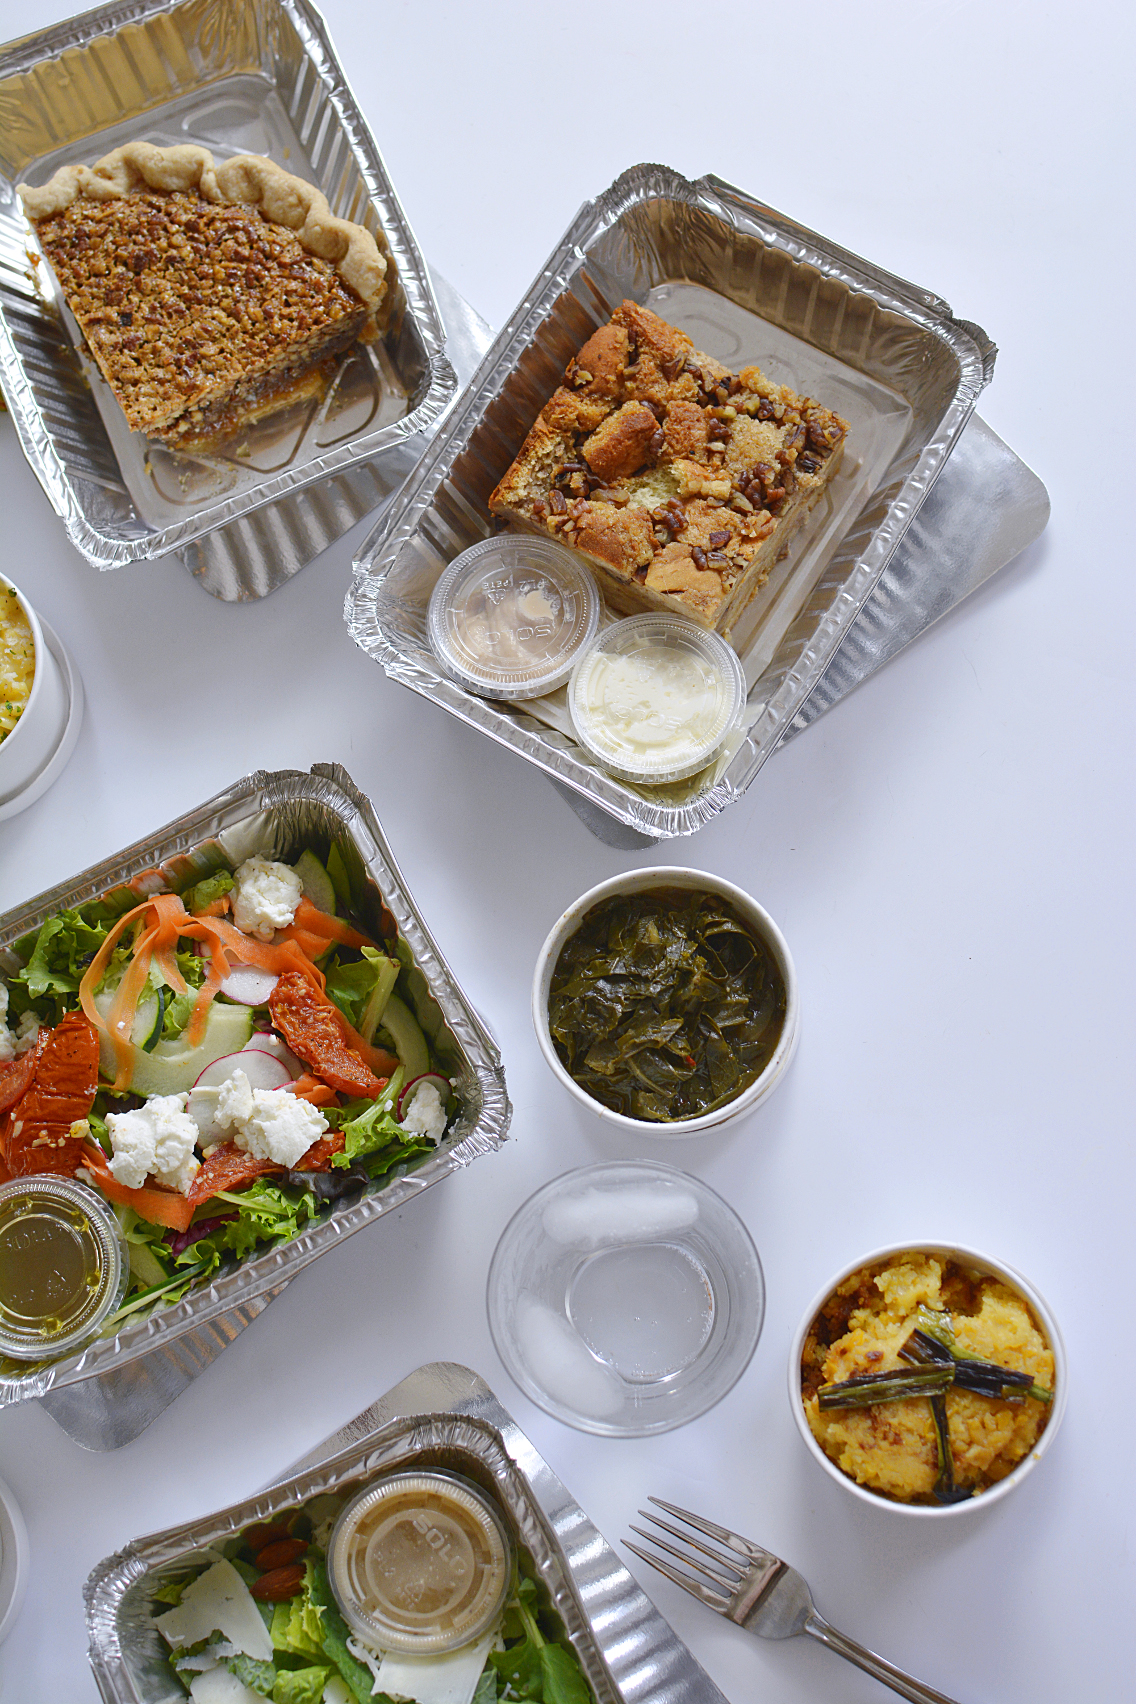 County BBQ DMK Chicago Lunch Delivery